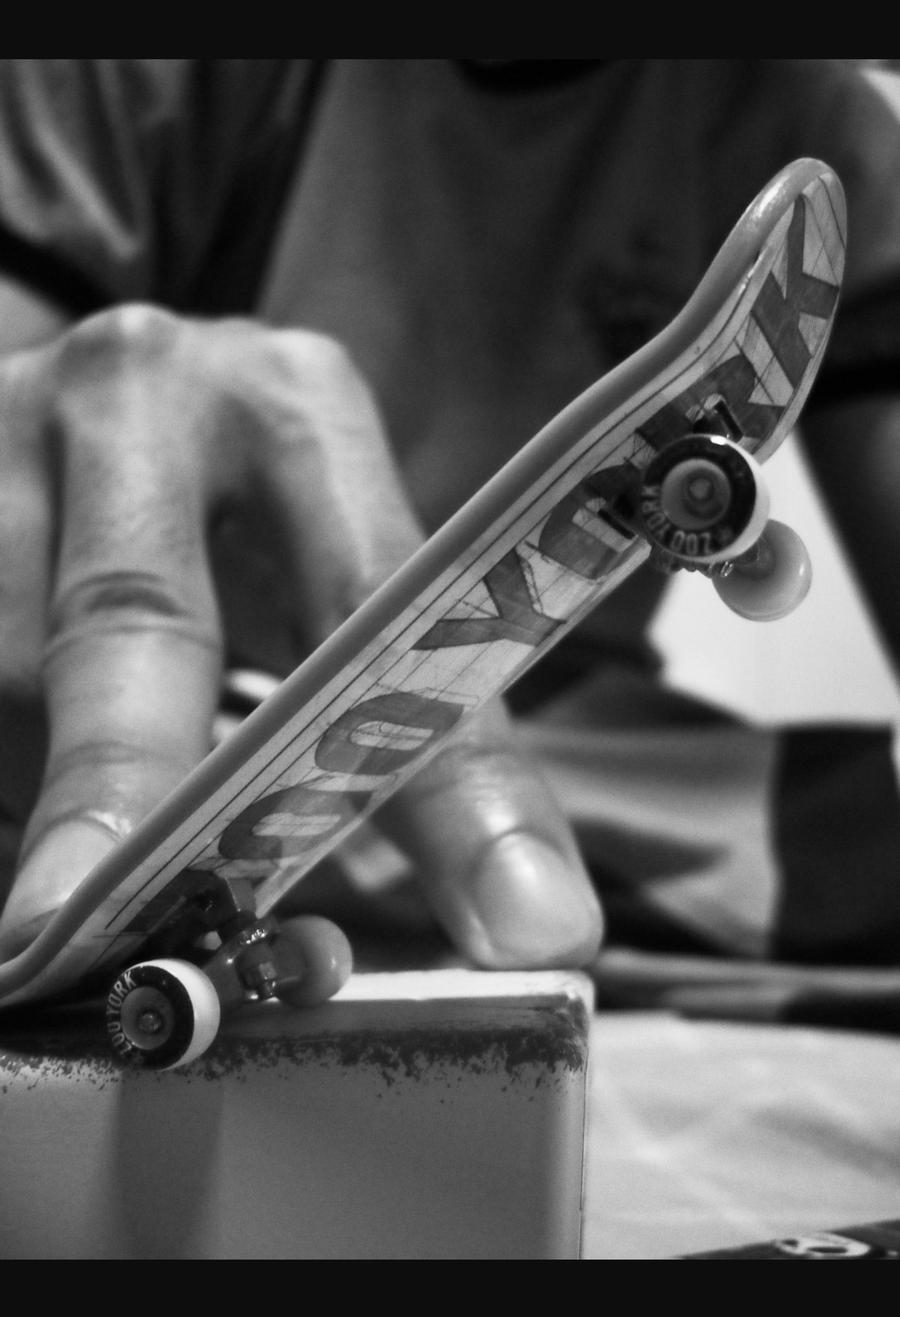 Fingerboard 02 by maykagee on deviantart fingerboard 02 by maykagee fingerboard 02 by maykagee voltagebd Choice Image